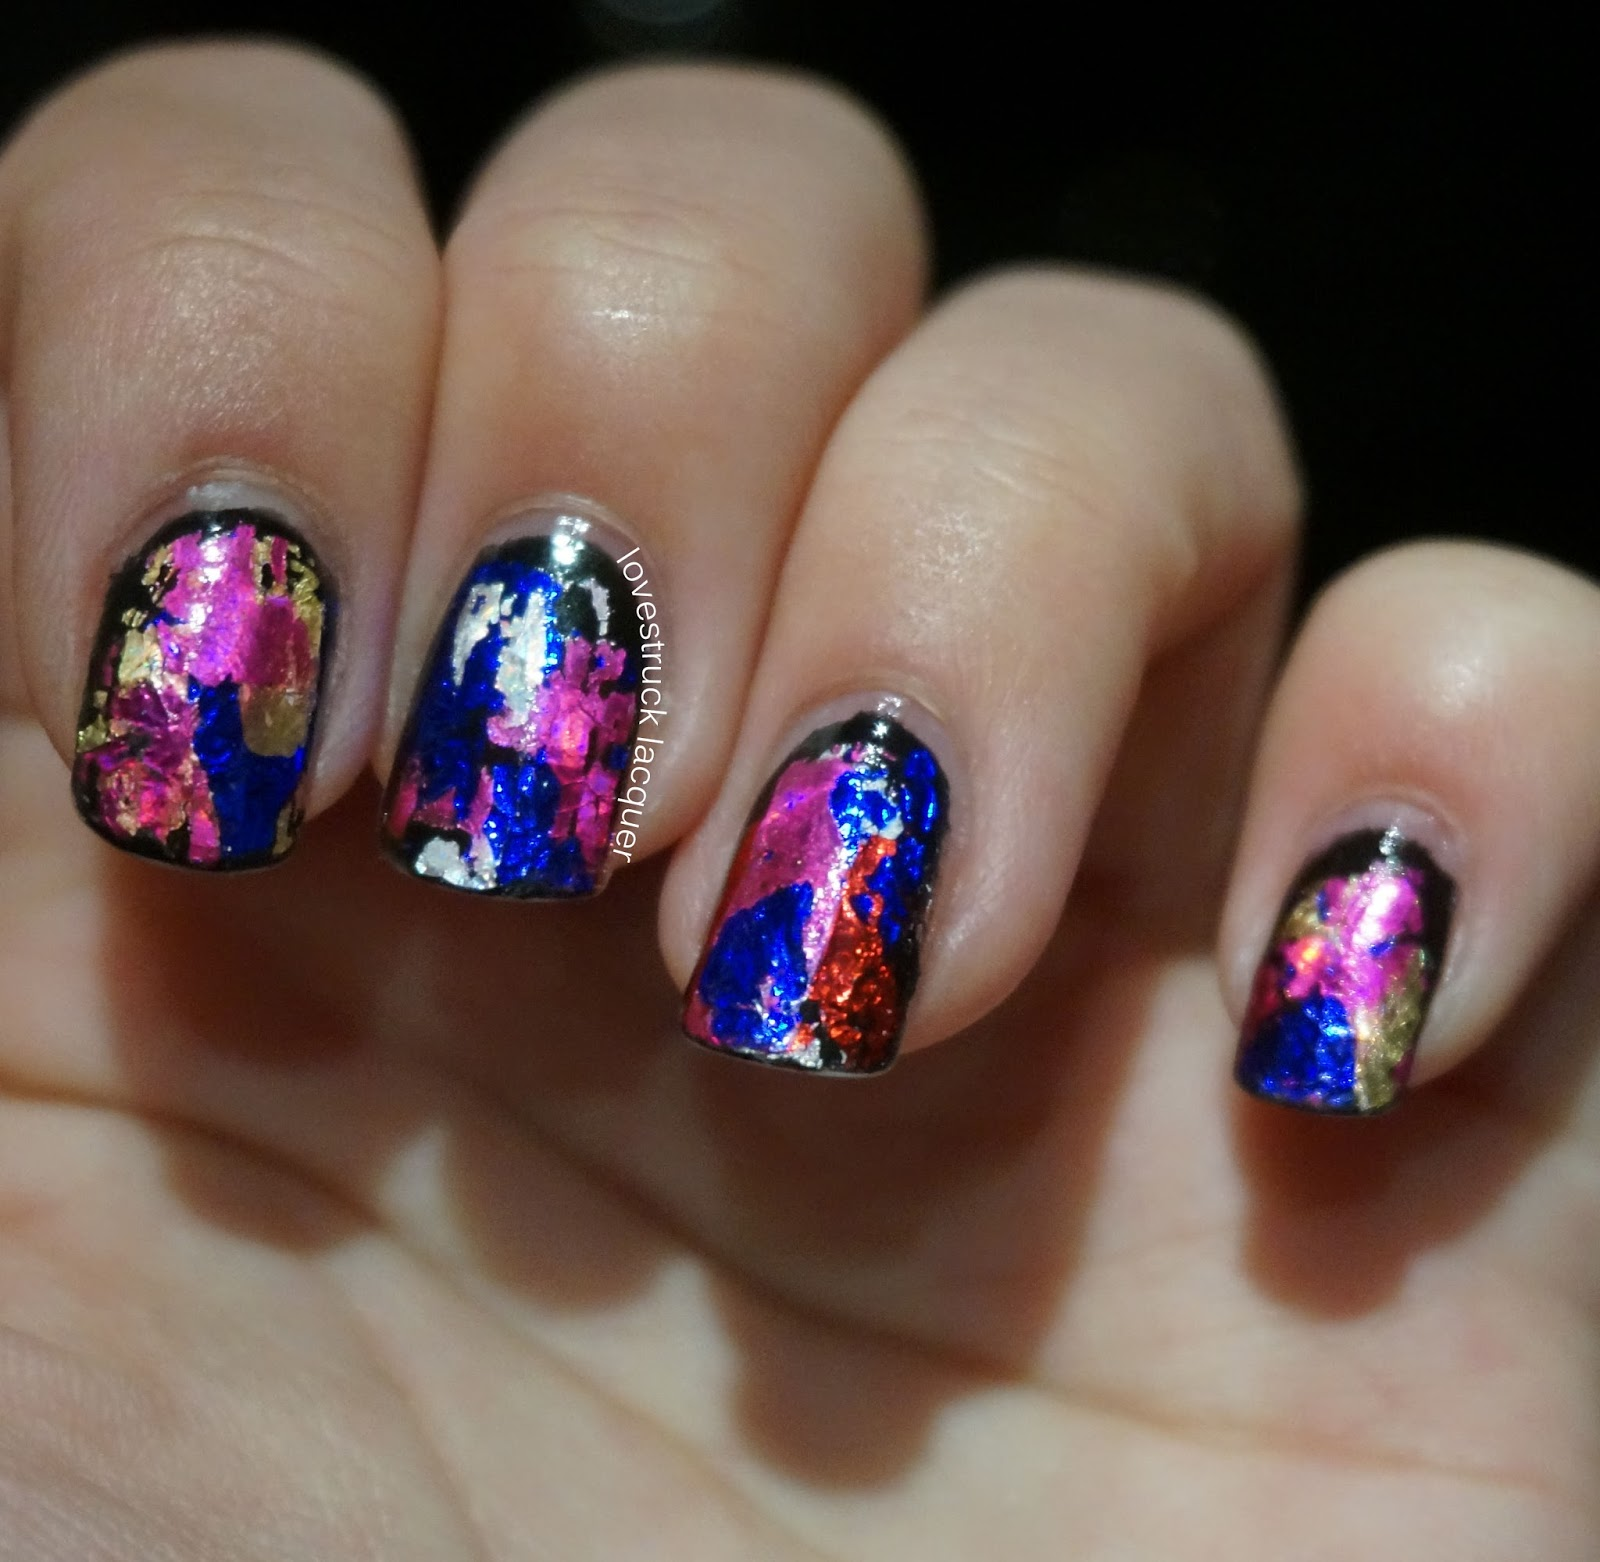 Lovestruck Lacquer: New Years Nails - Ciate Very Colourfoil Kit ...